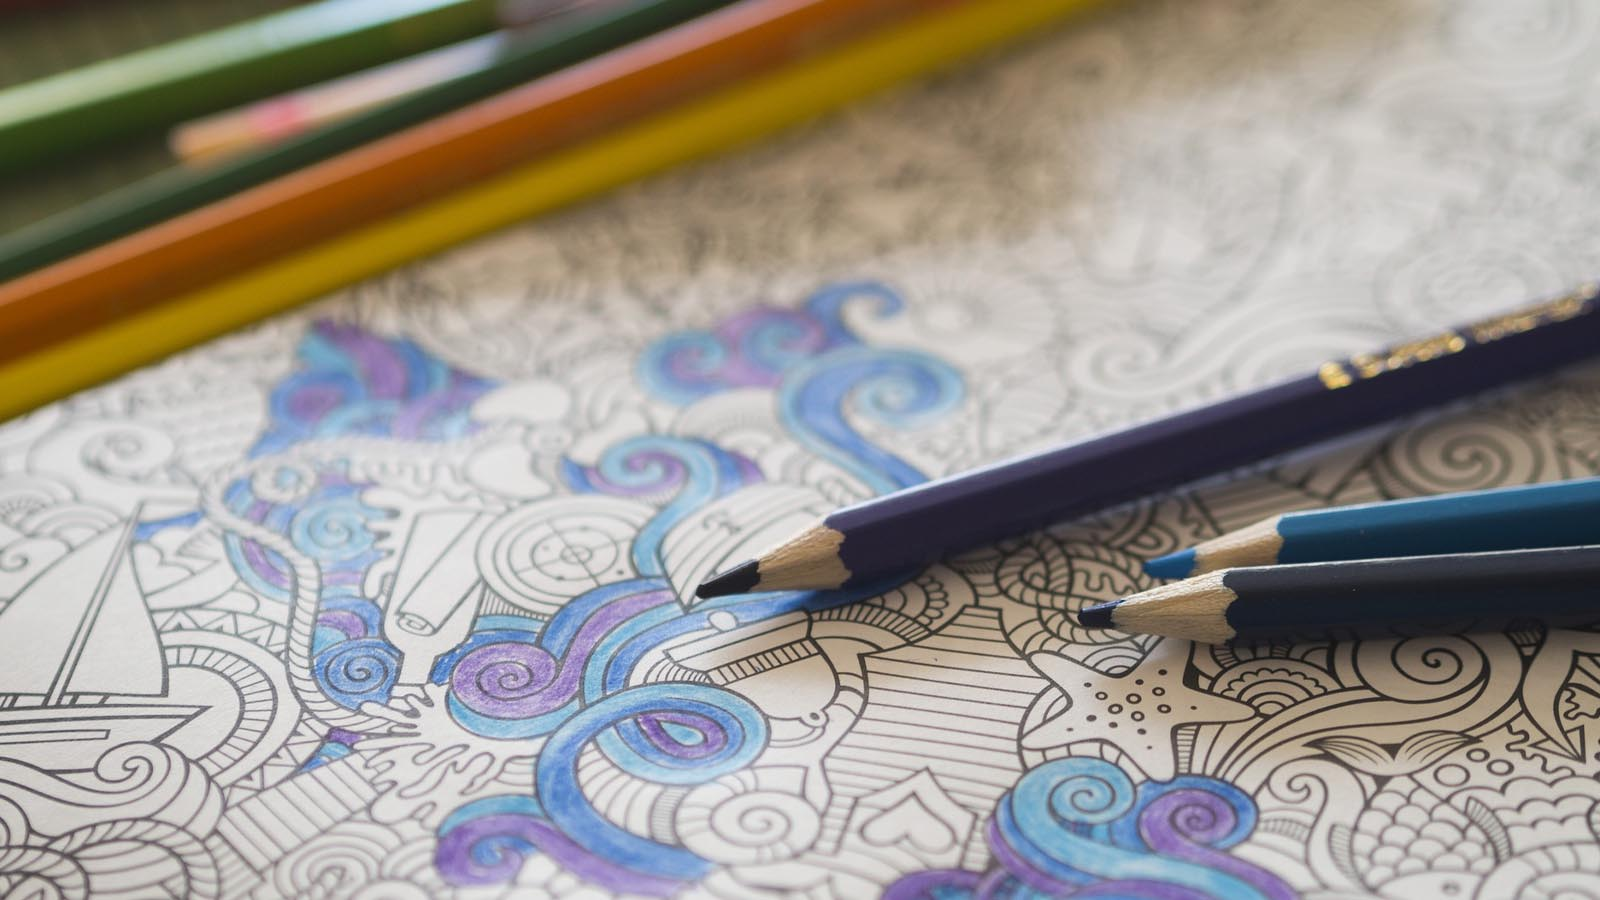 Creativity as Your First Line of Defense Against Evil